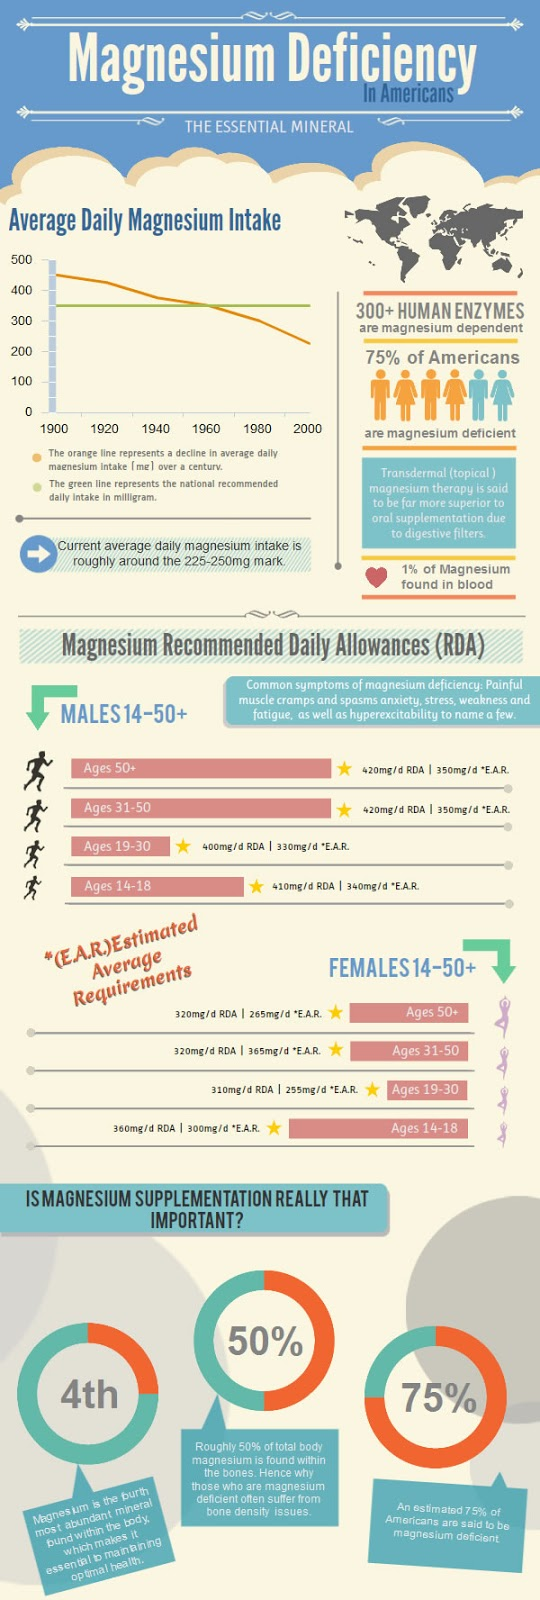 Magnesium deficiency infographic